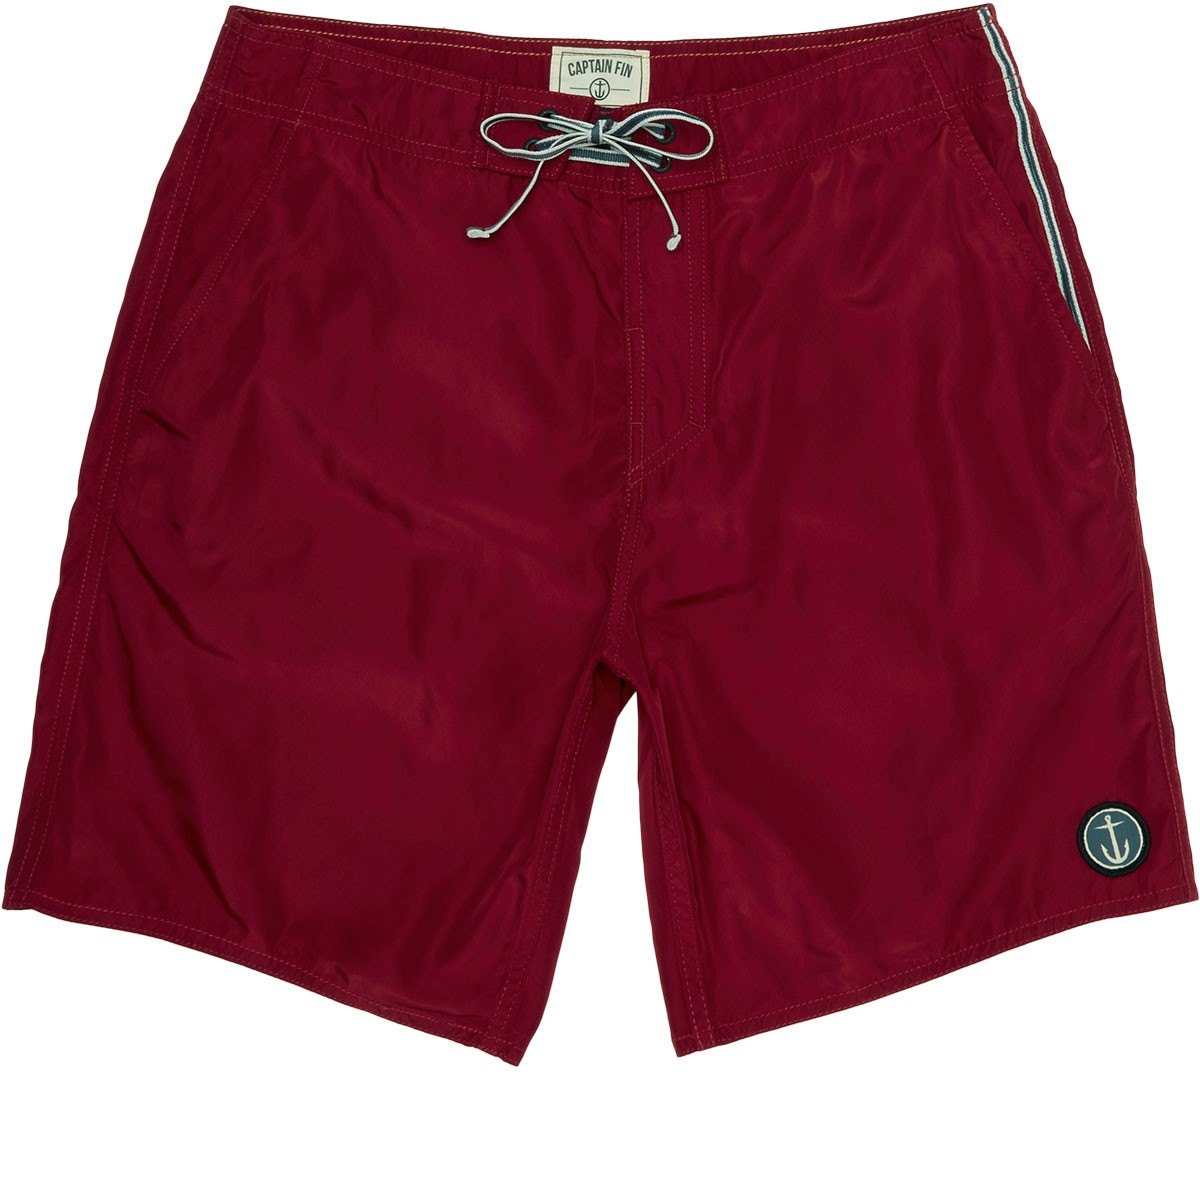 Boardshorts Pocketeer Captain Breed Burgundy Fin Half 8n0kOwP